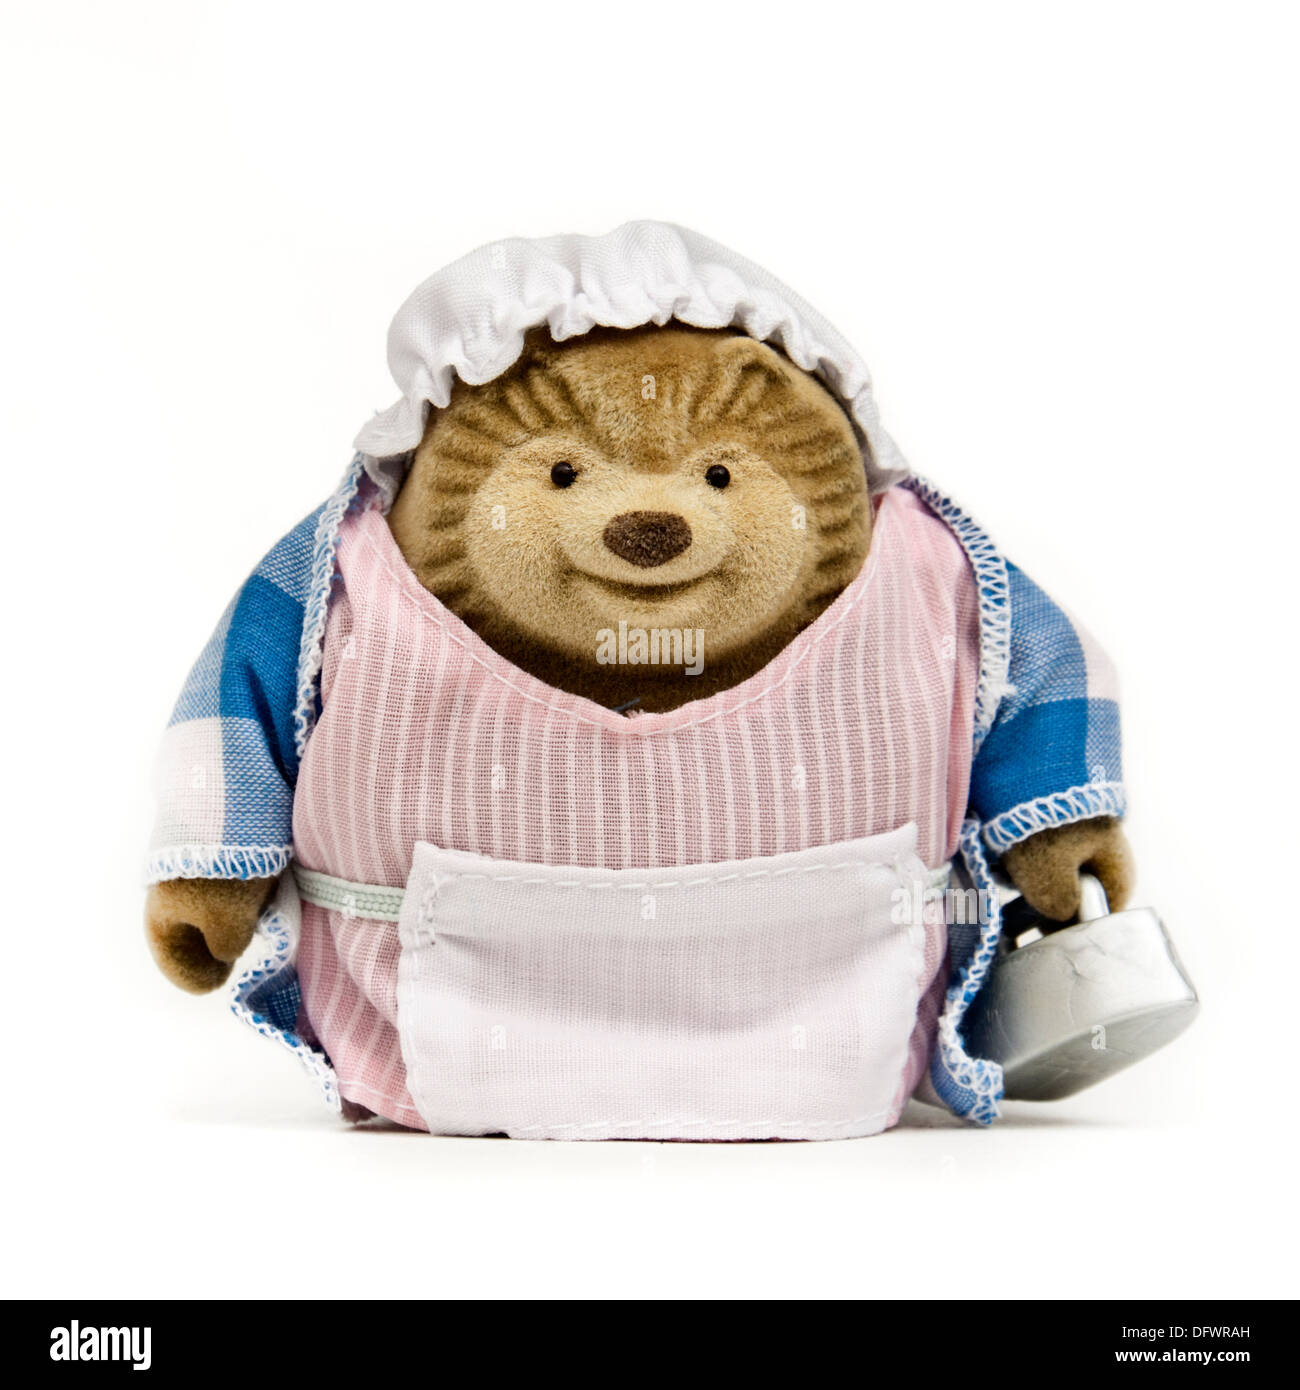 Plush toy based on 'The Tale of Mrs Tiggy-Winkle' by Beatrix Potter (1905) - Stock Image